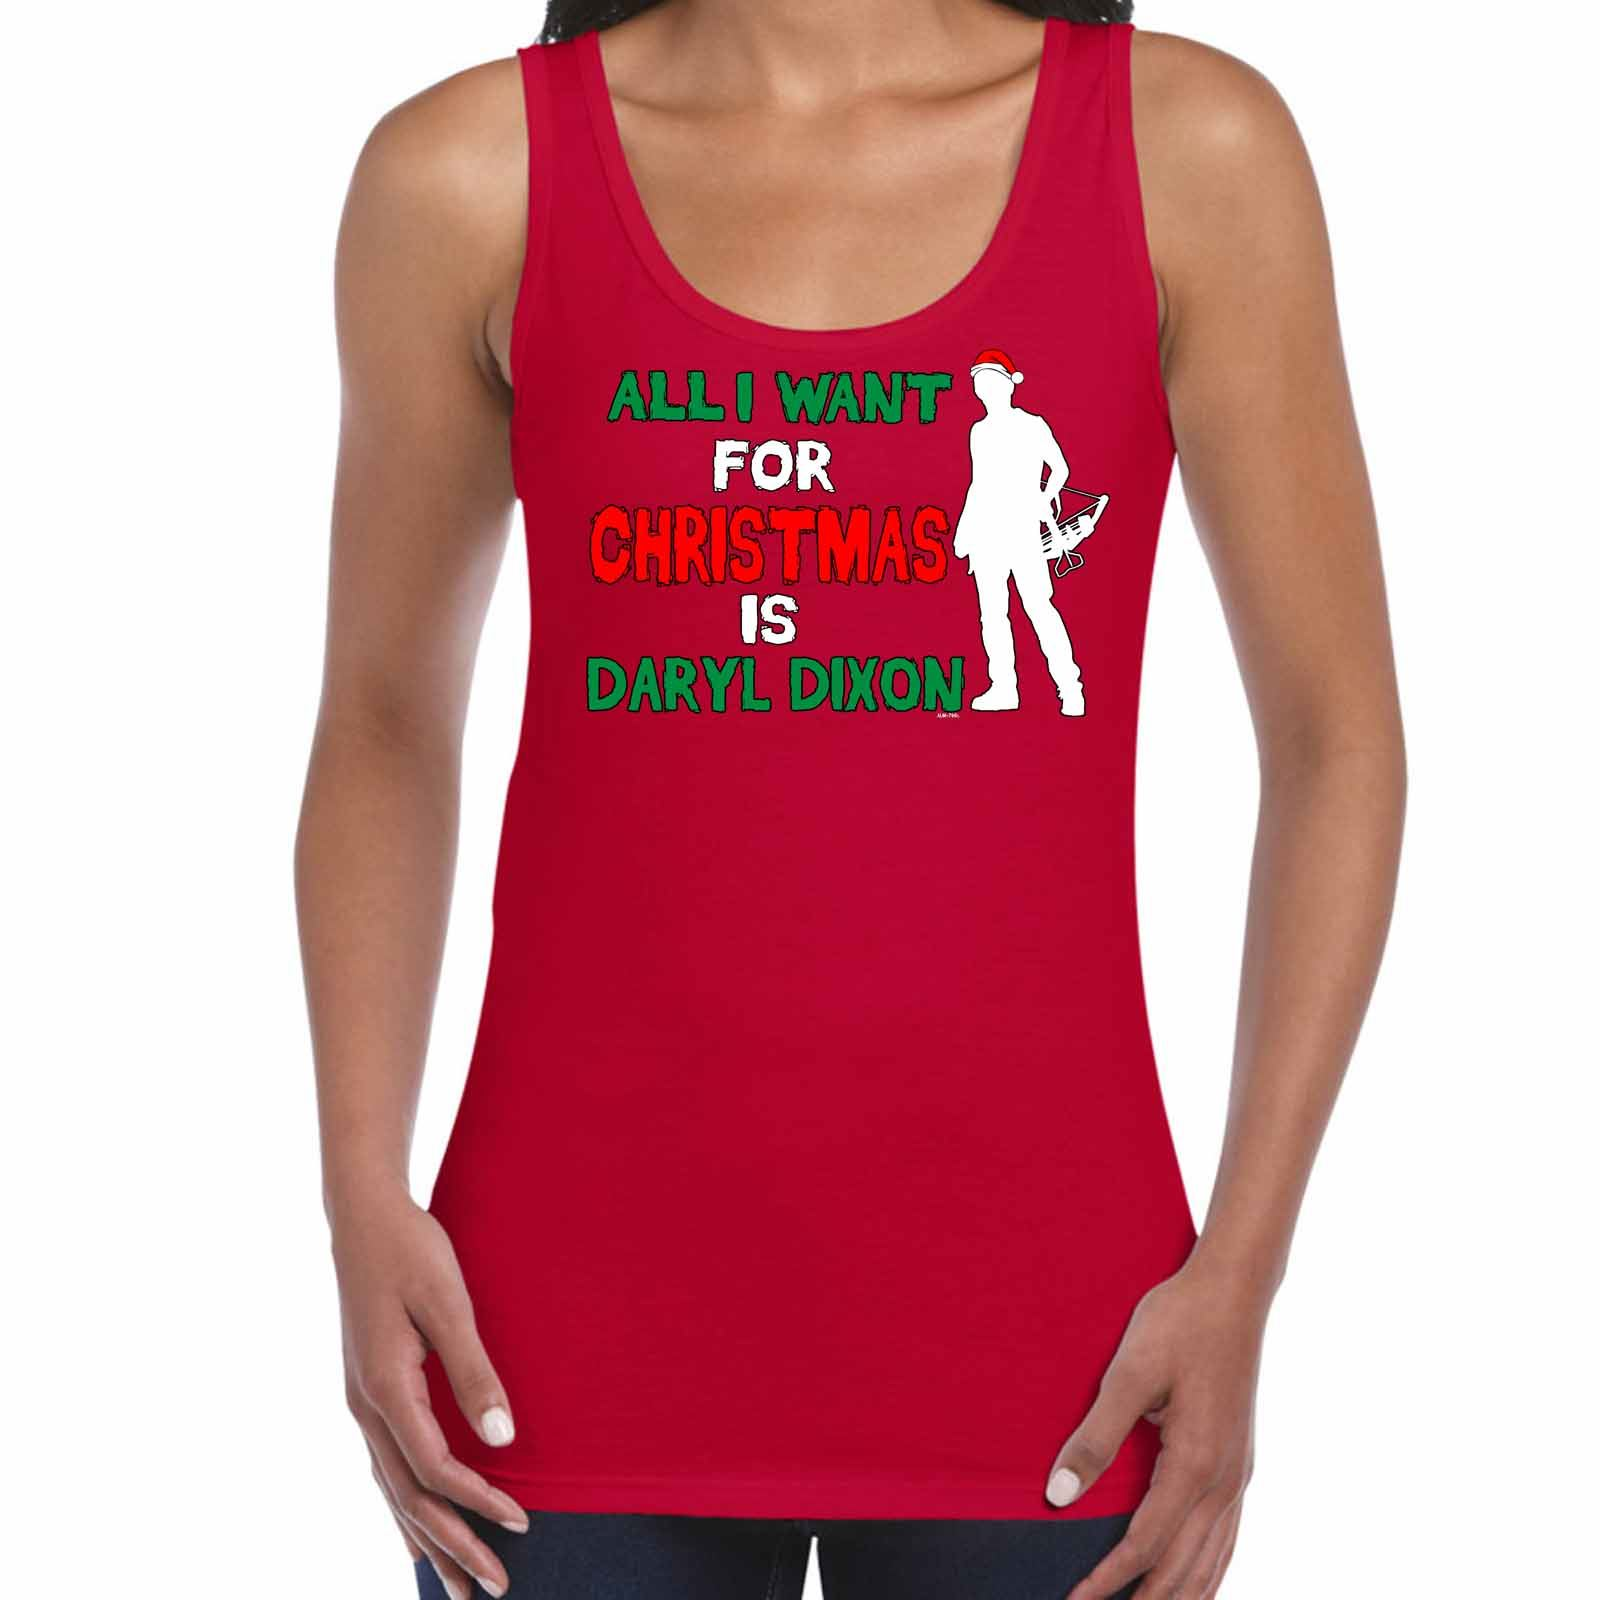 ALM786t-Womens-Tank-Tops-I-Want-Daryl-Dixon-For-Christmas-Walking-Dead-Inspired